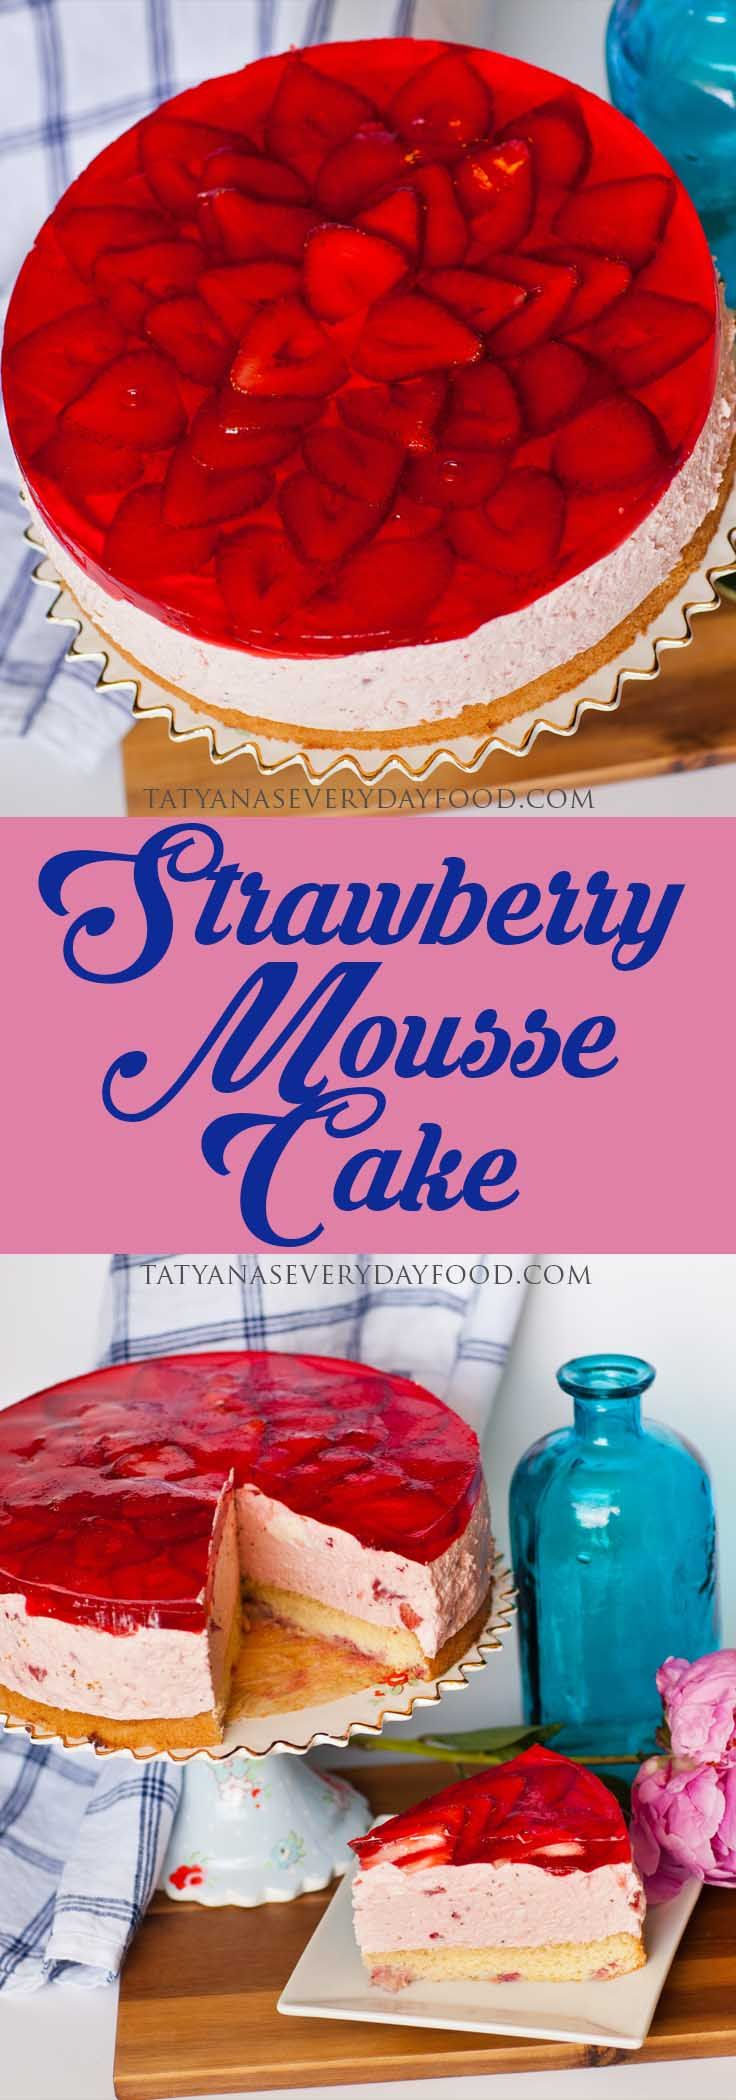 A show stopping 'Strawberry Mousse Cake' for the strawberry lover! This cake is loaded with strawberries, starting from the sponge cake base, a double dose in the strawberry mousse and more berries to finish off the top. If you're looking for a light and airy cake to enjoy, give this one a try! Watch my […]